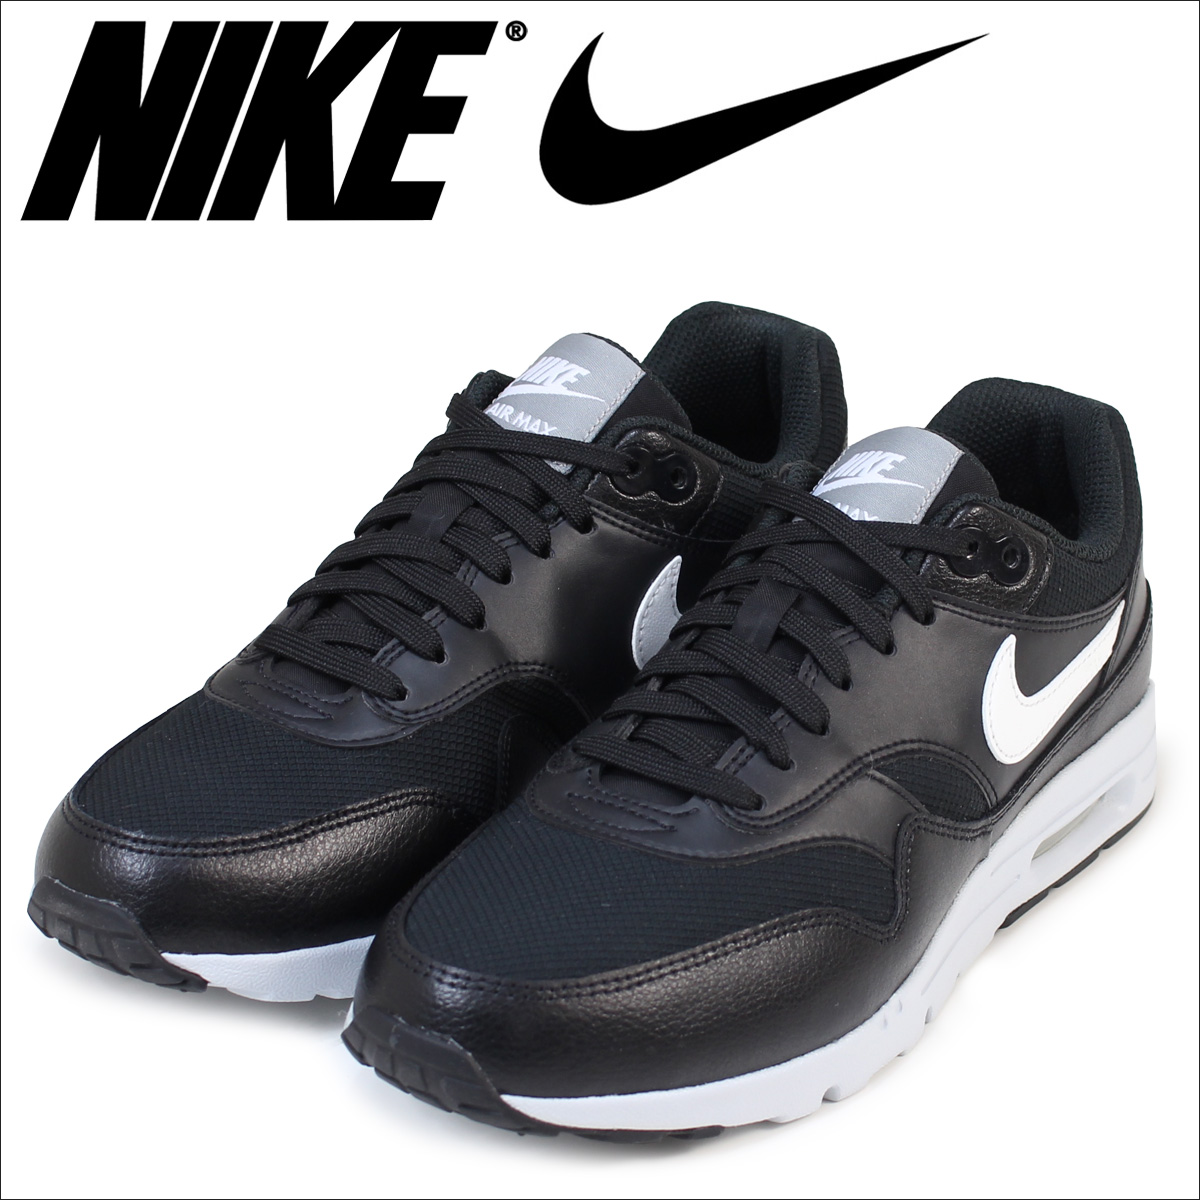 nike air max 1 ultra essentials black and white market